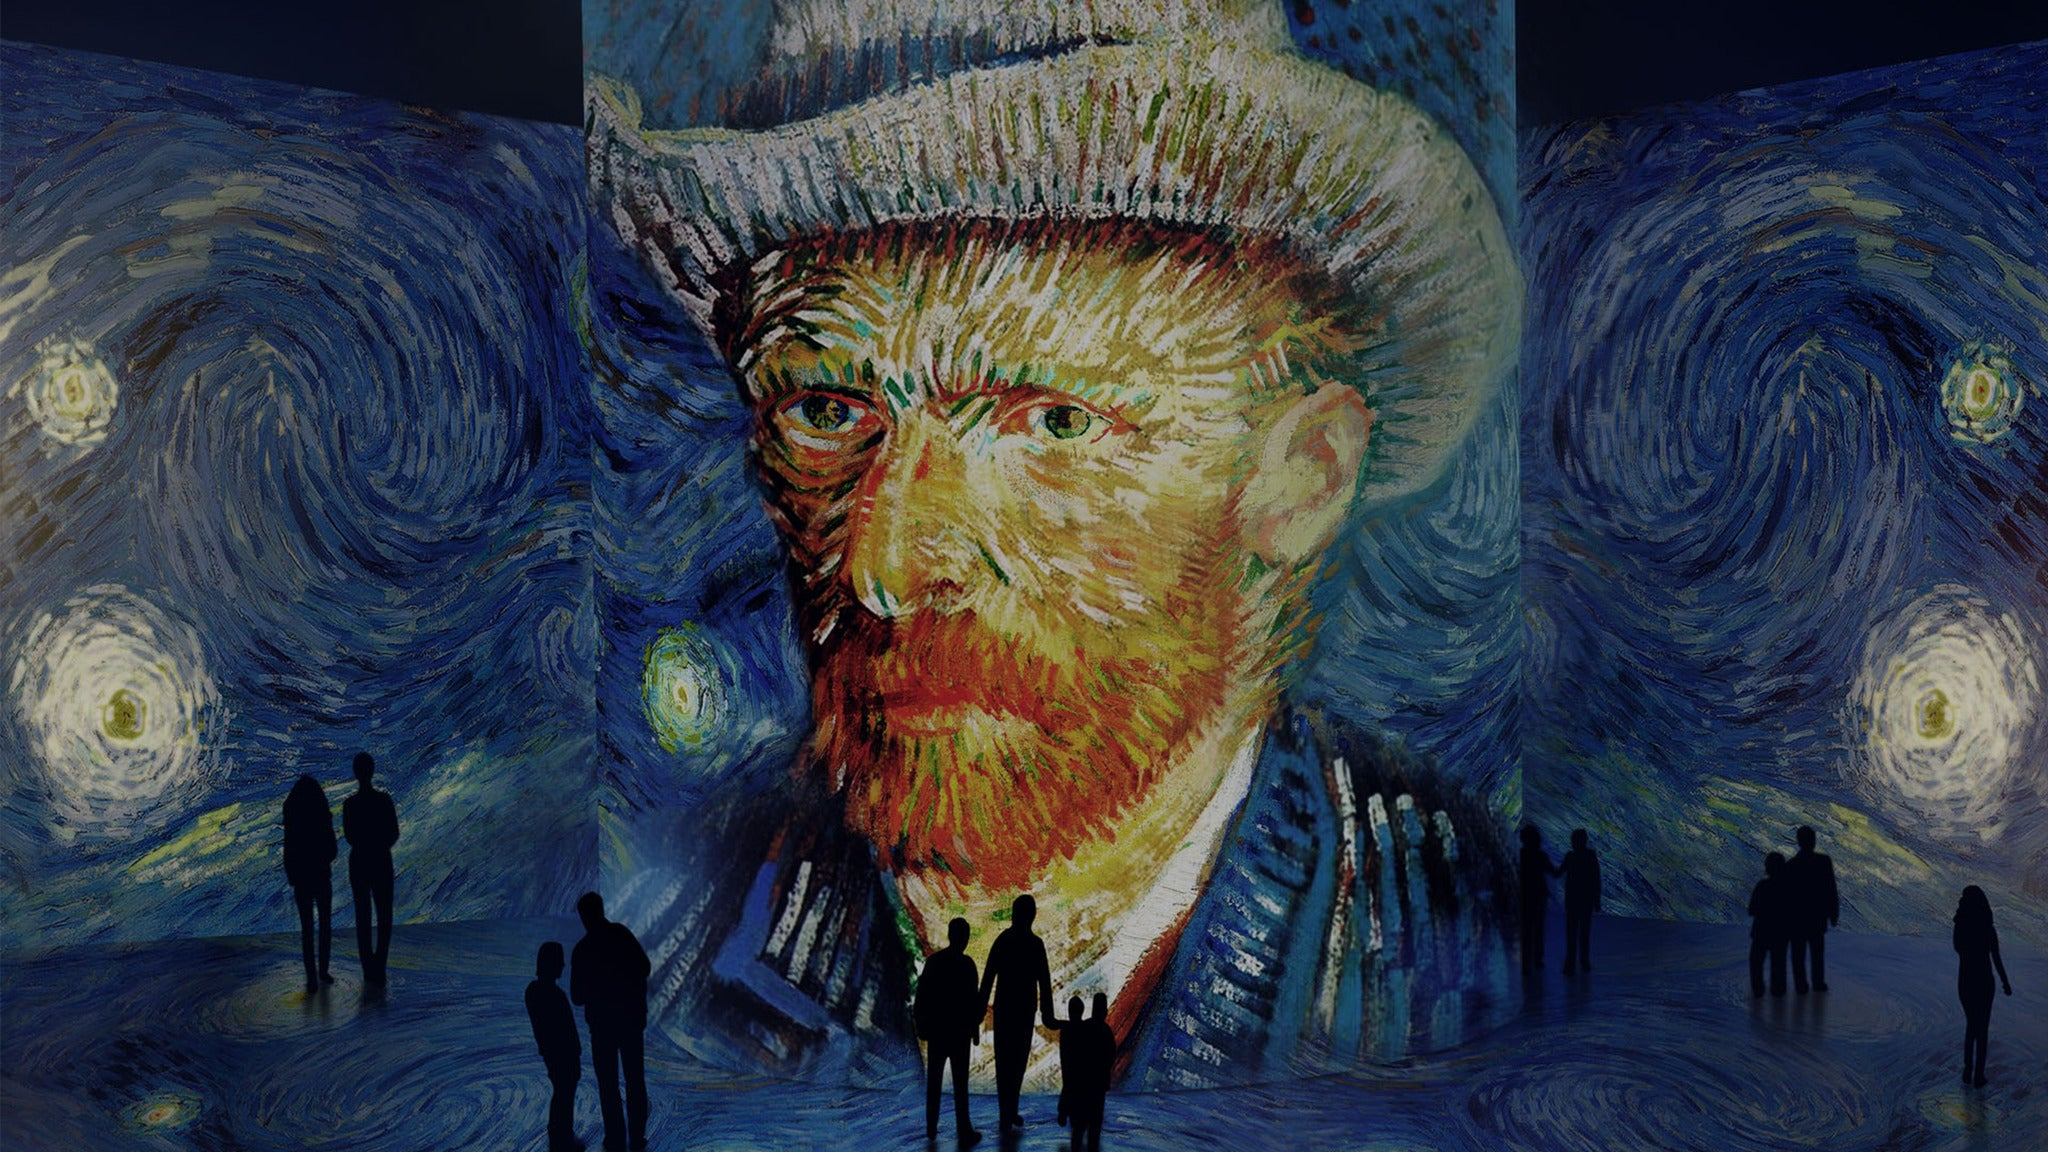 Immersive Van Gogh (Off-Peak) at Lighthouse ArtSpace Chicago